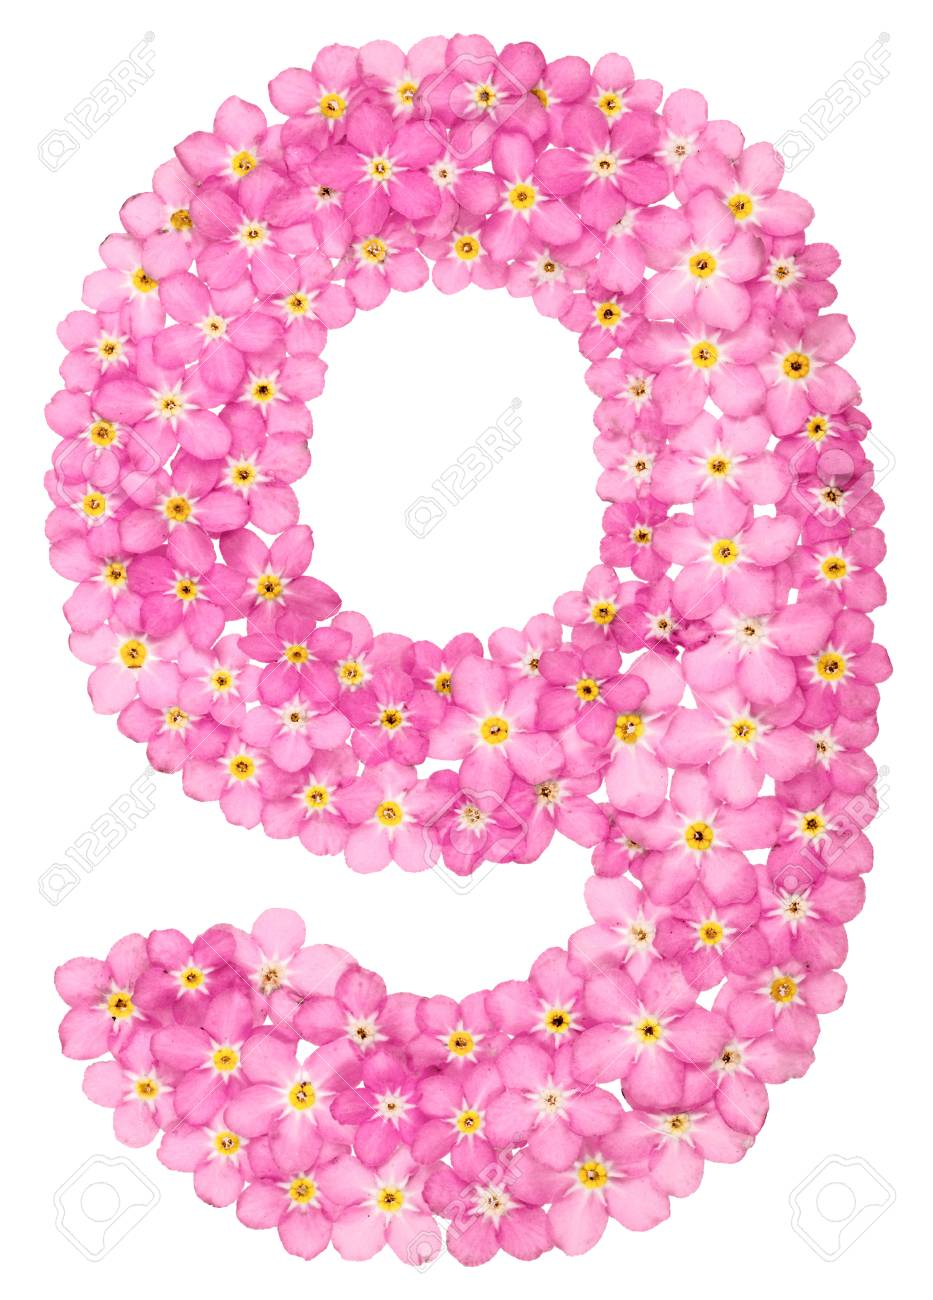 Arabic Numeral 9 Nine From Pink Forget Me Not Flowers Isolated